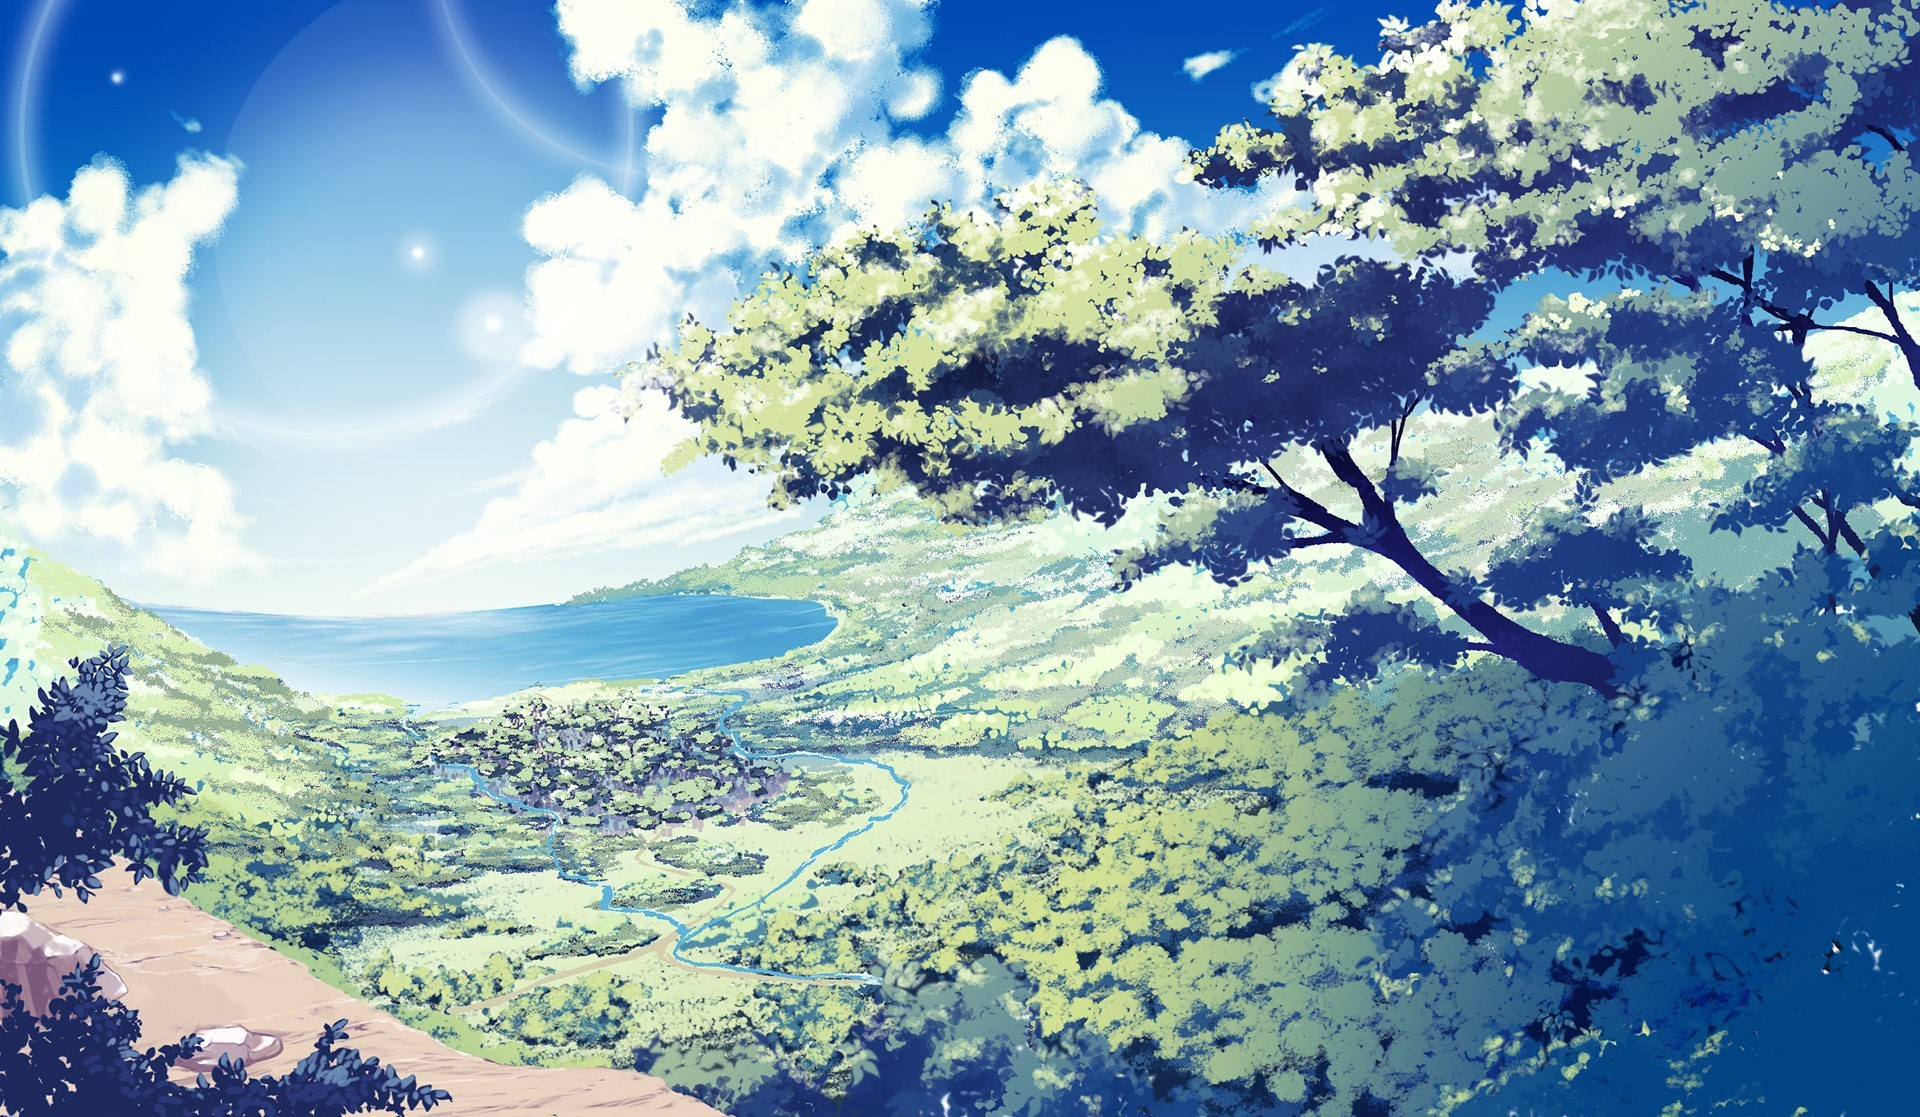 Anime nature wallpaper 77 images 1920x1117 nature anime scenery background wallpaper voltagebd Images